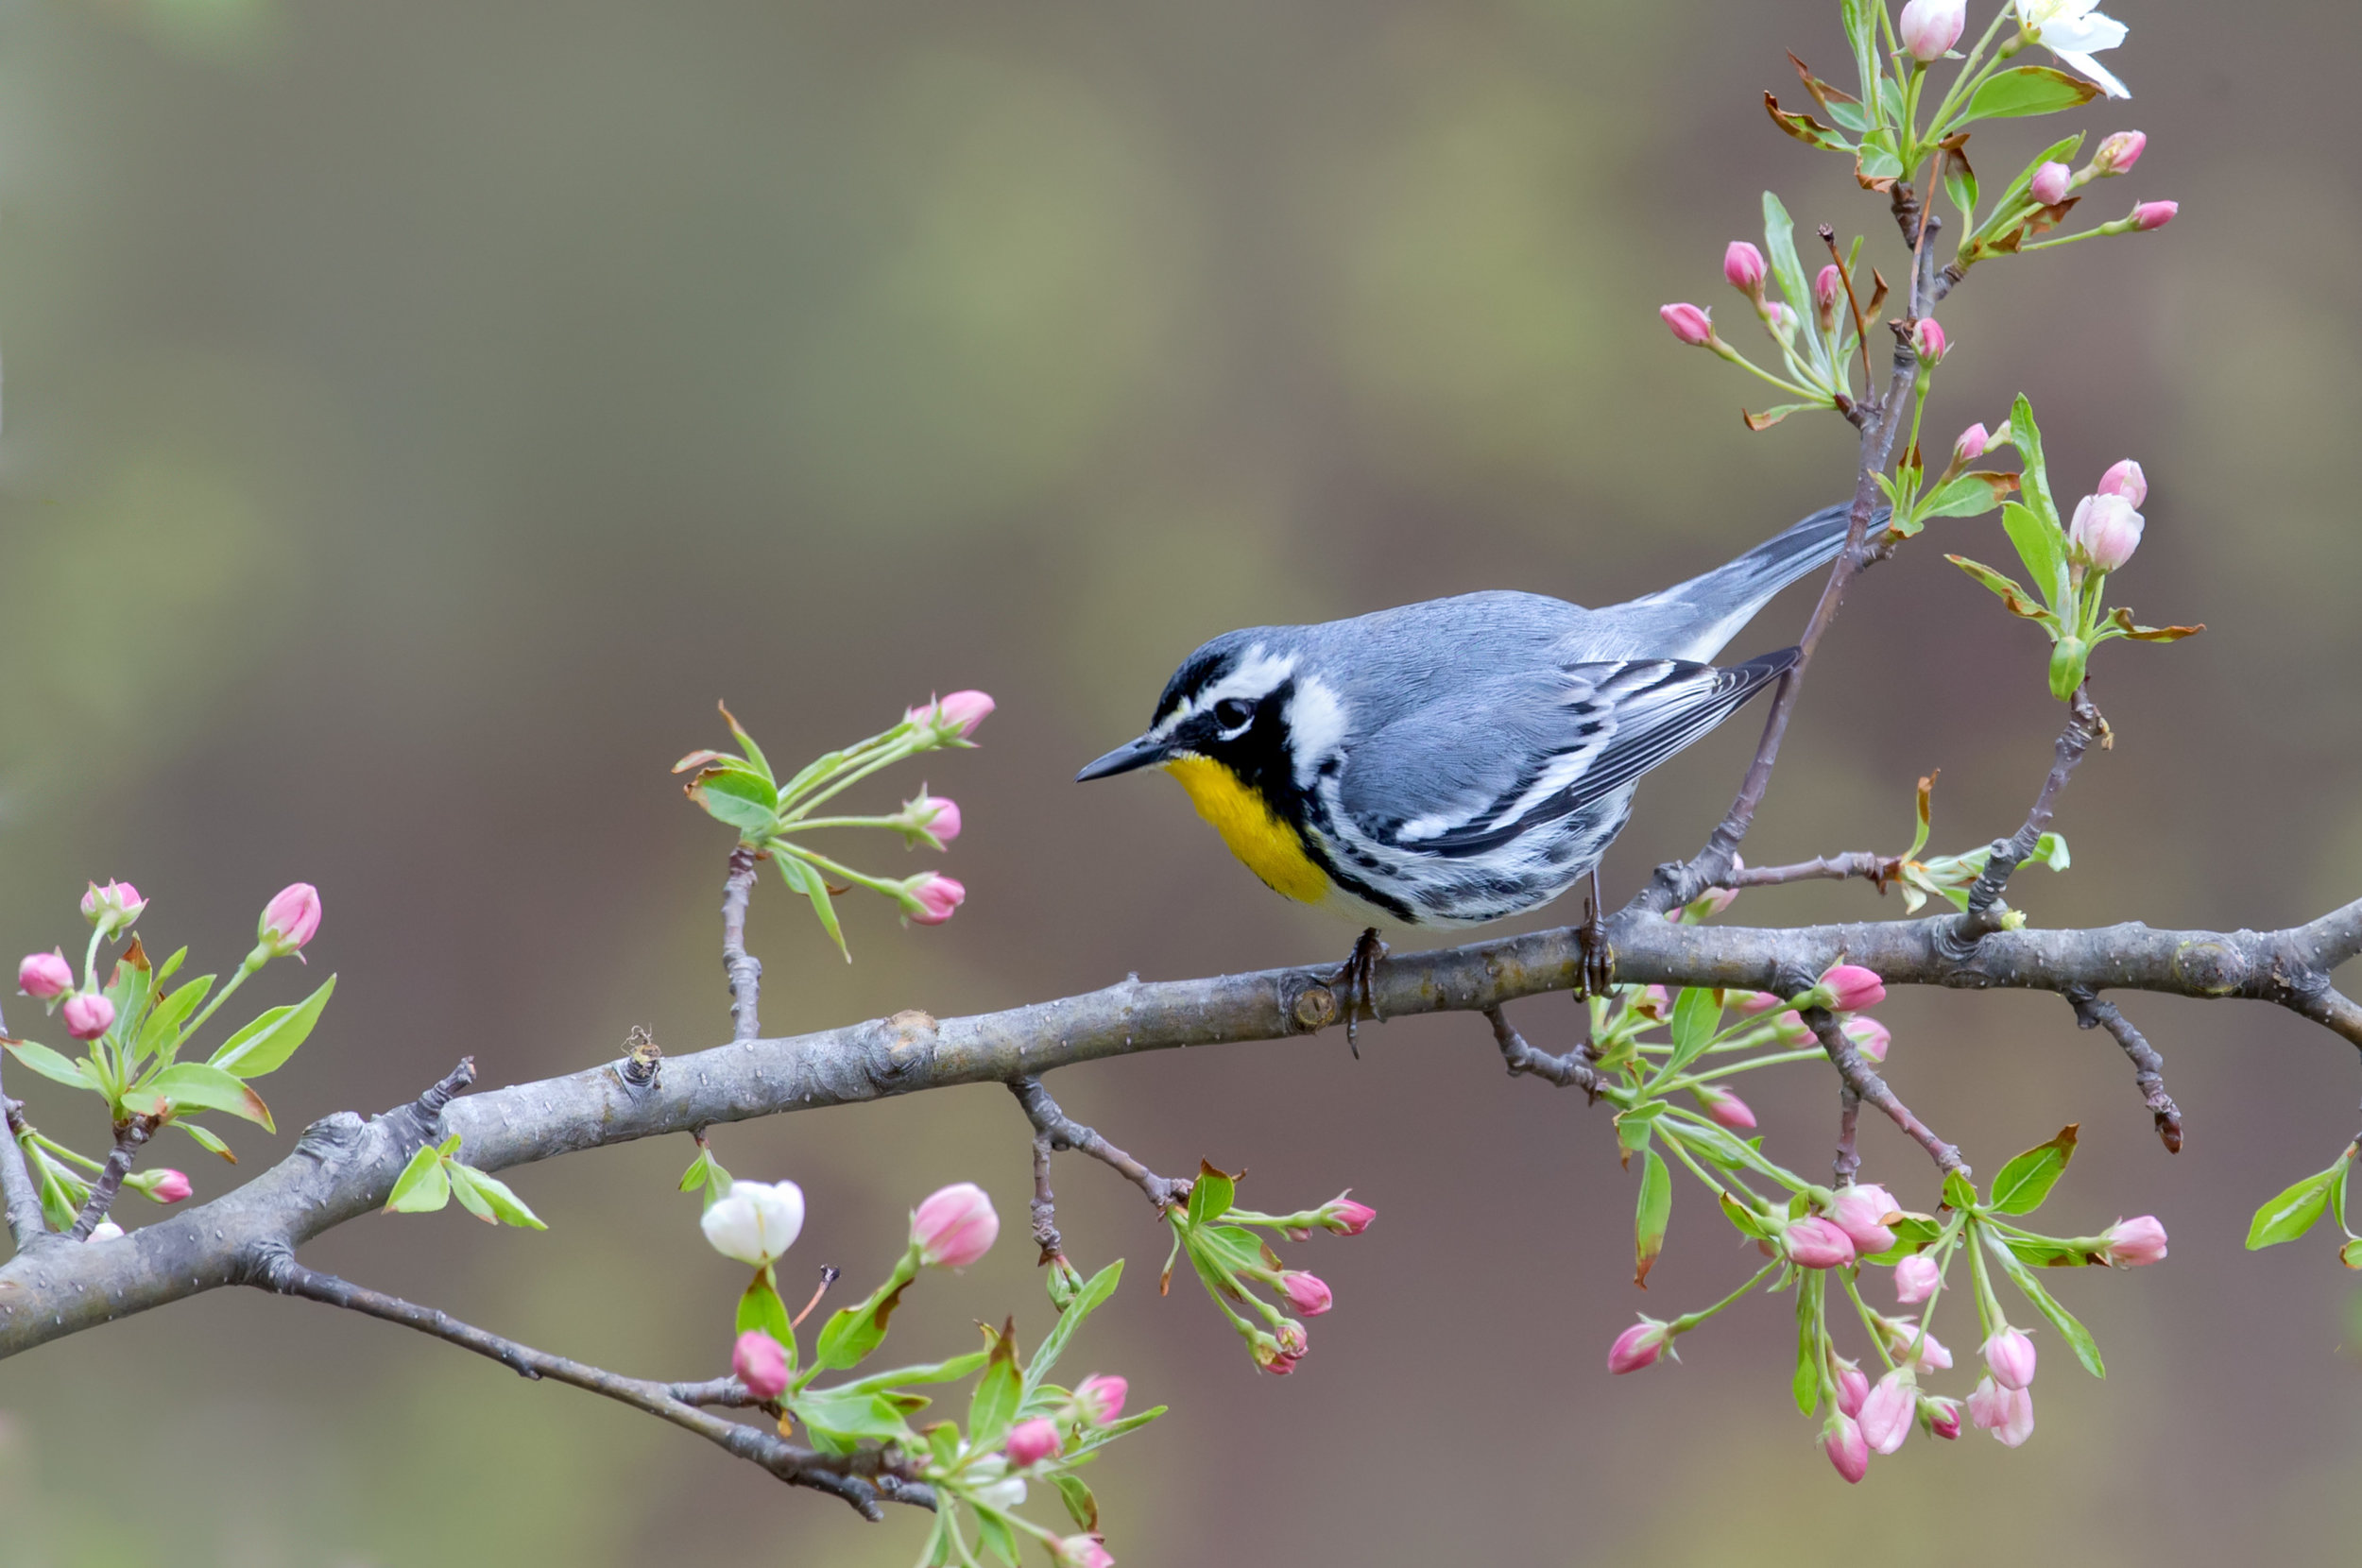 yellow-throated_warbler_AG3P2391c.jpg